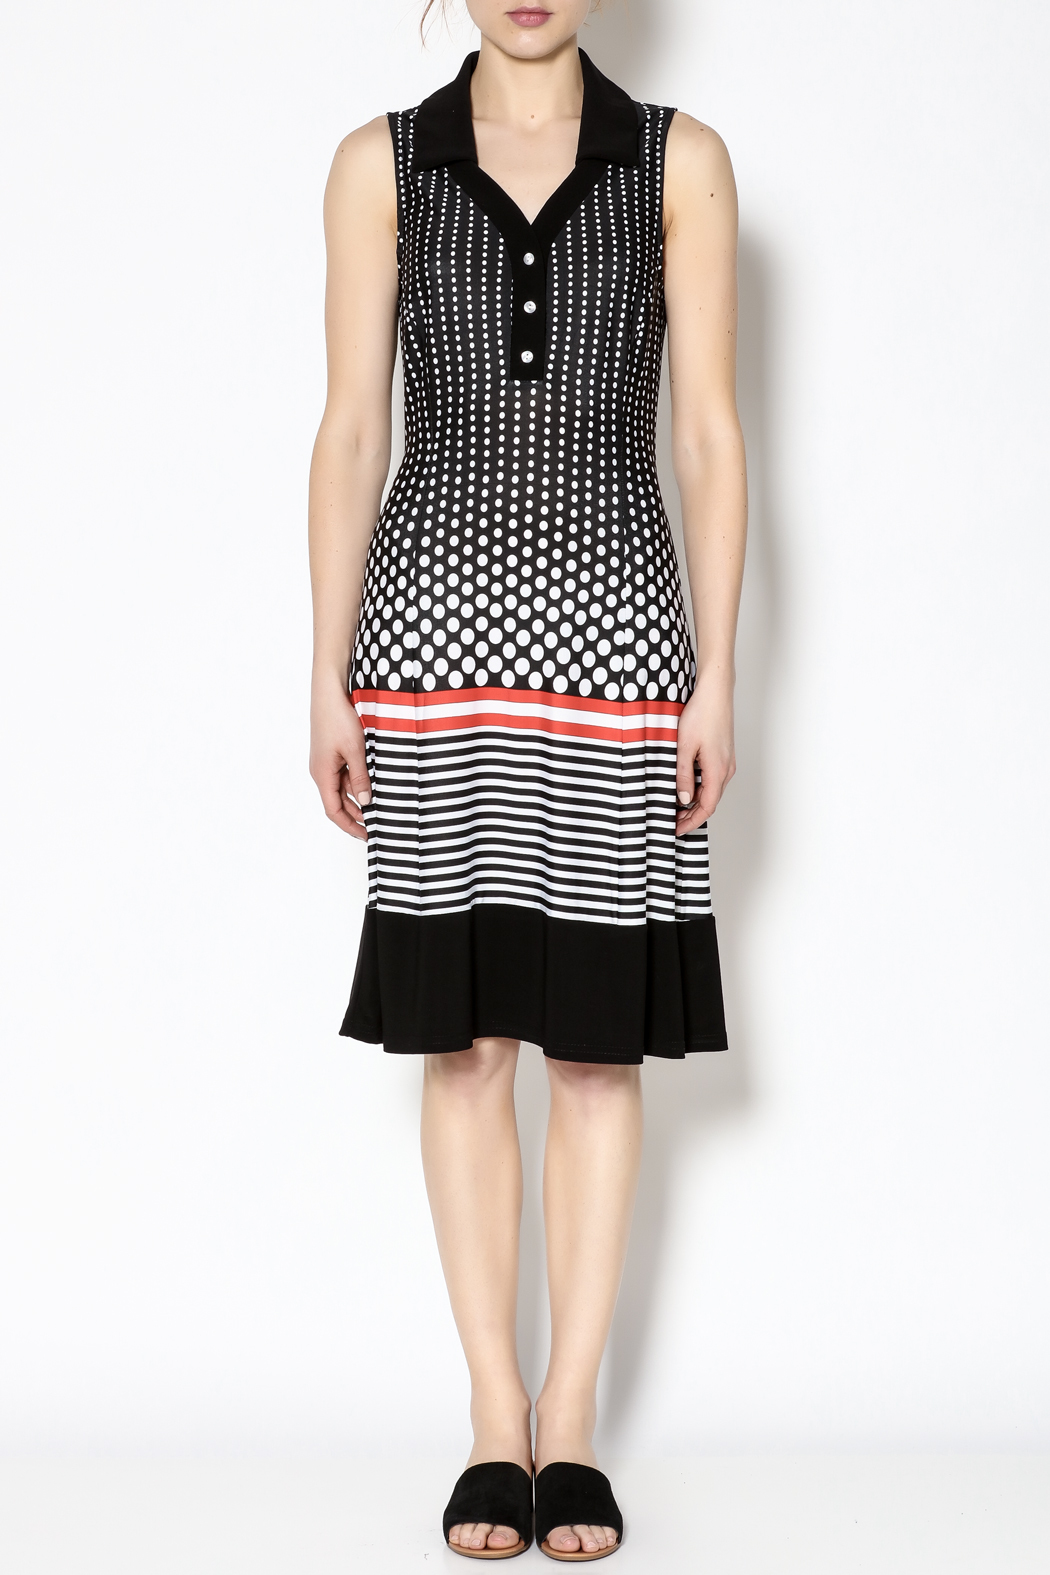 Michael Tyler Collections Polka Dot Dress - Front Cropped Image